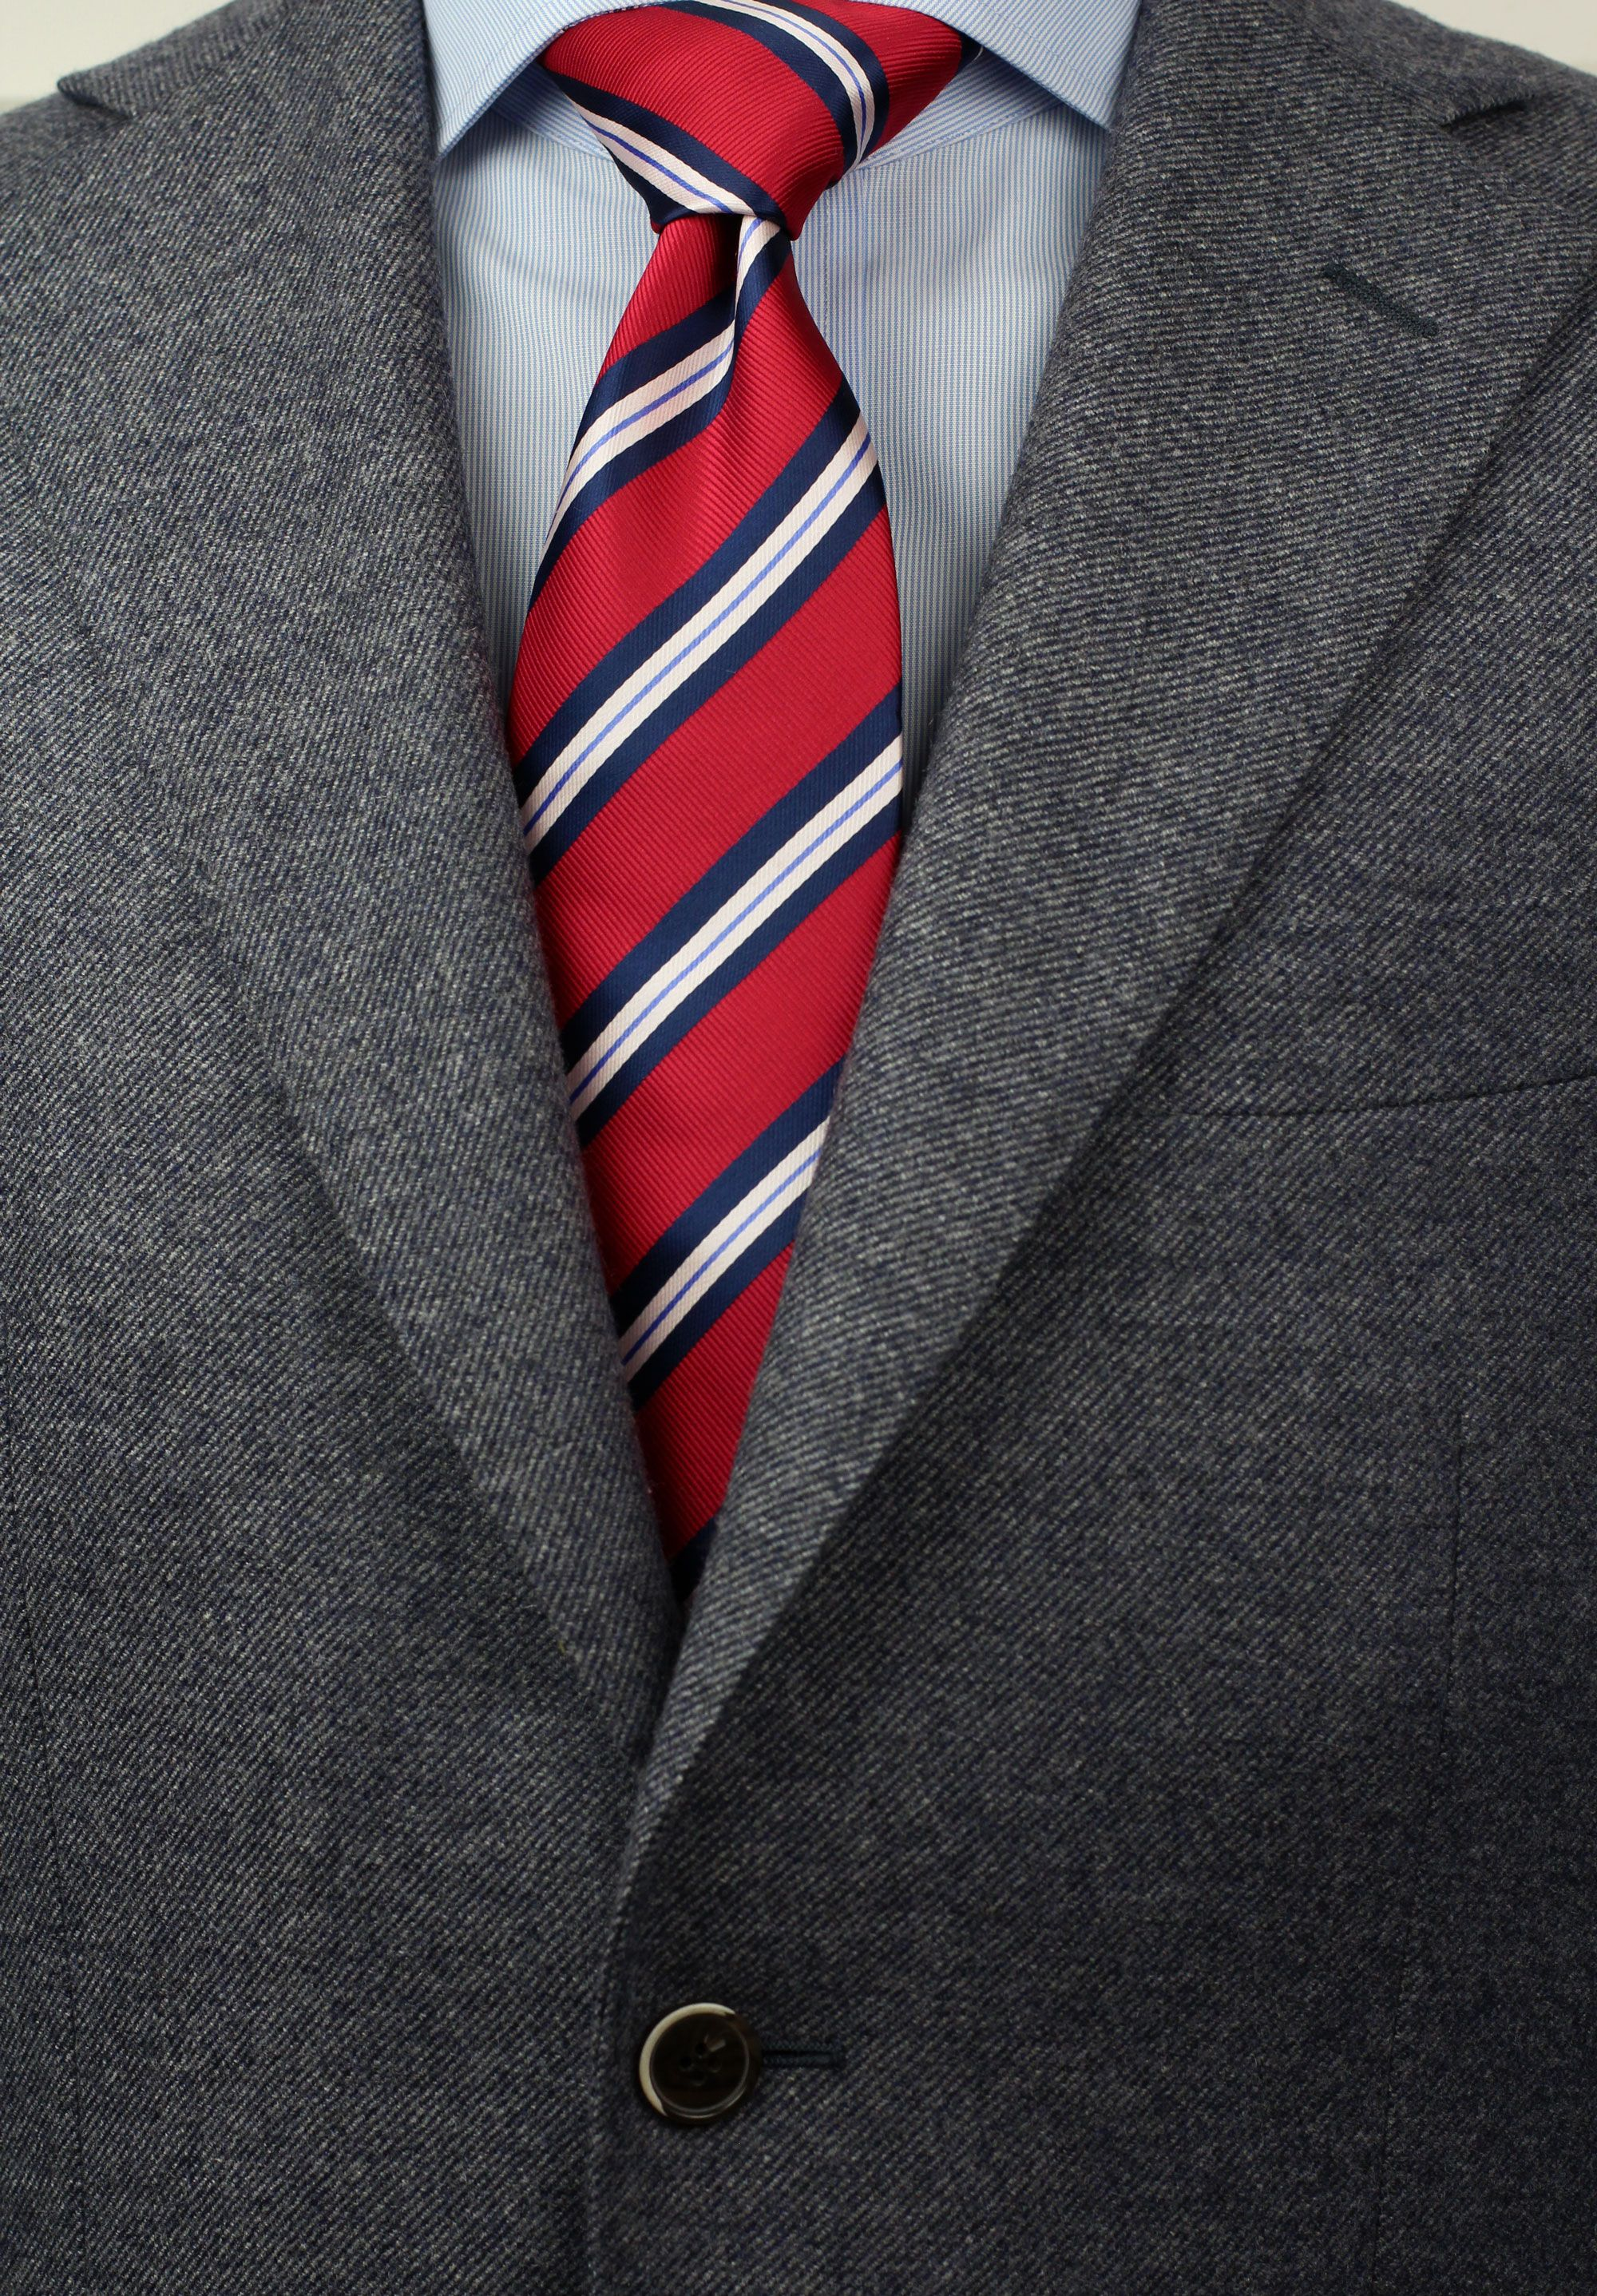 Red And Blue Striped Summer Tie Cheap Neckties Com Summer Ties Red And Blue Tie